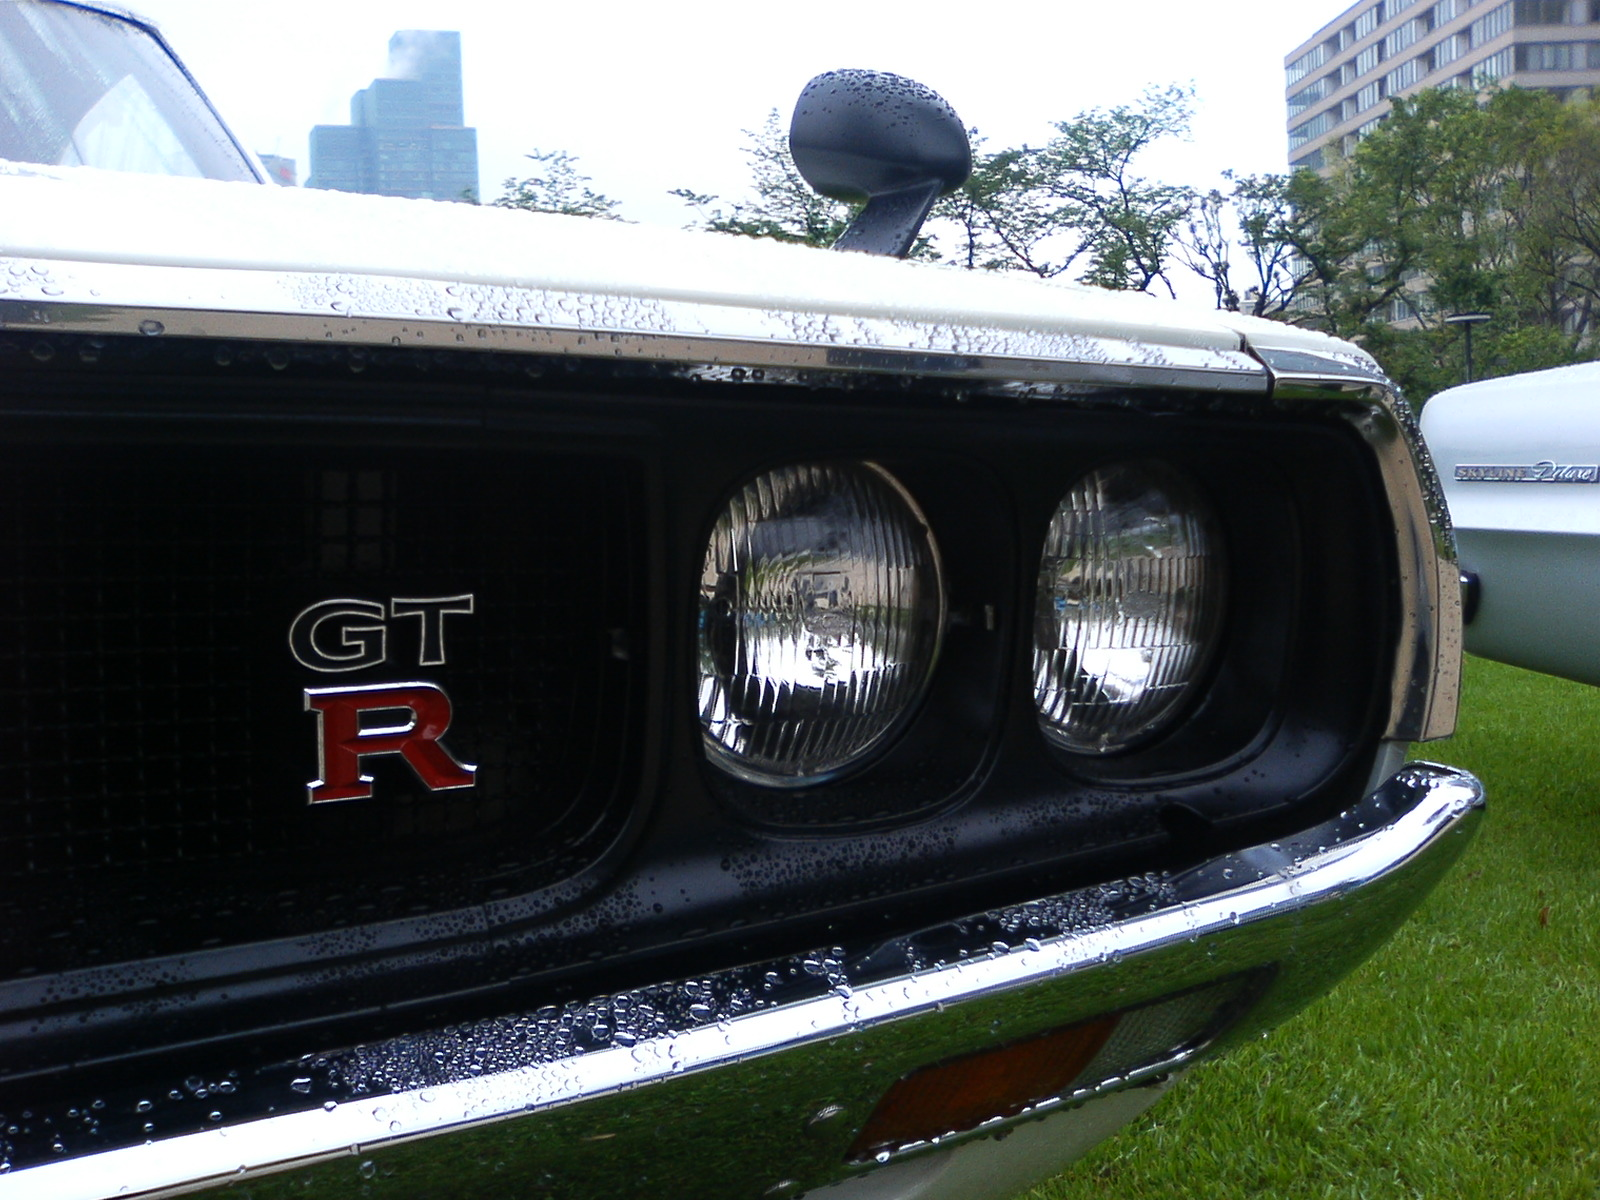 Nissan Skyline KPGC110 headlights